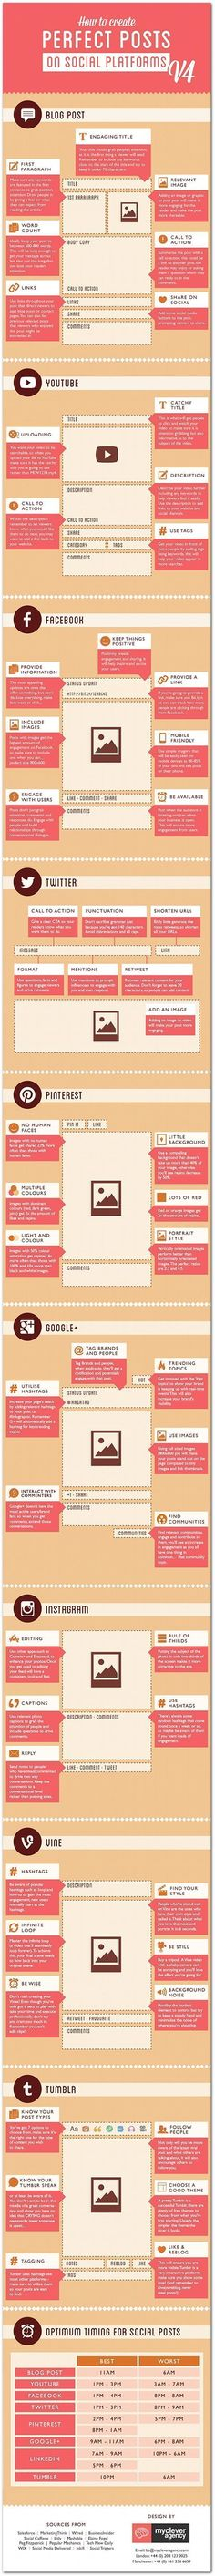 A Guide to Perfect Social Media Posts (Infographic) [INFOGRAPHIC] Guide to Perfect Social Media Posts for a blog; YouTube; Facebook; Twitter; Pinterest; Google+; Instagram; Vine; and Tumblr: Title; Image; First paragraph; Word count; Call-to-action; Links